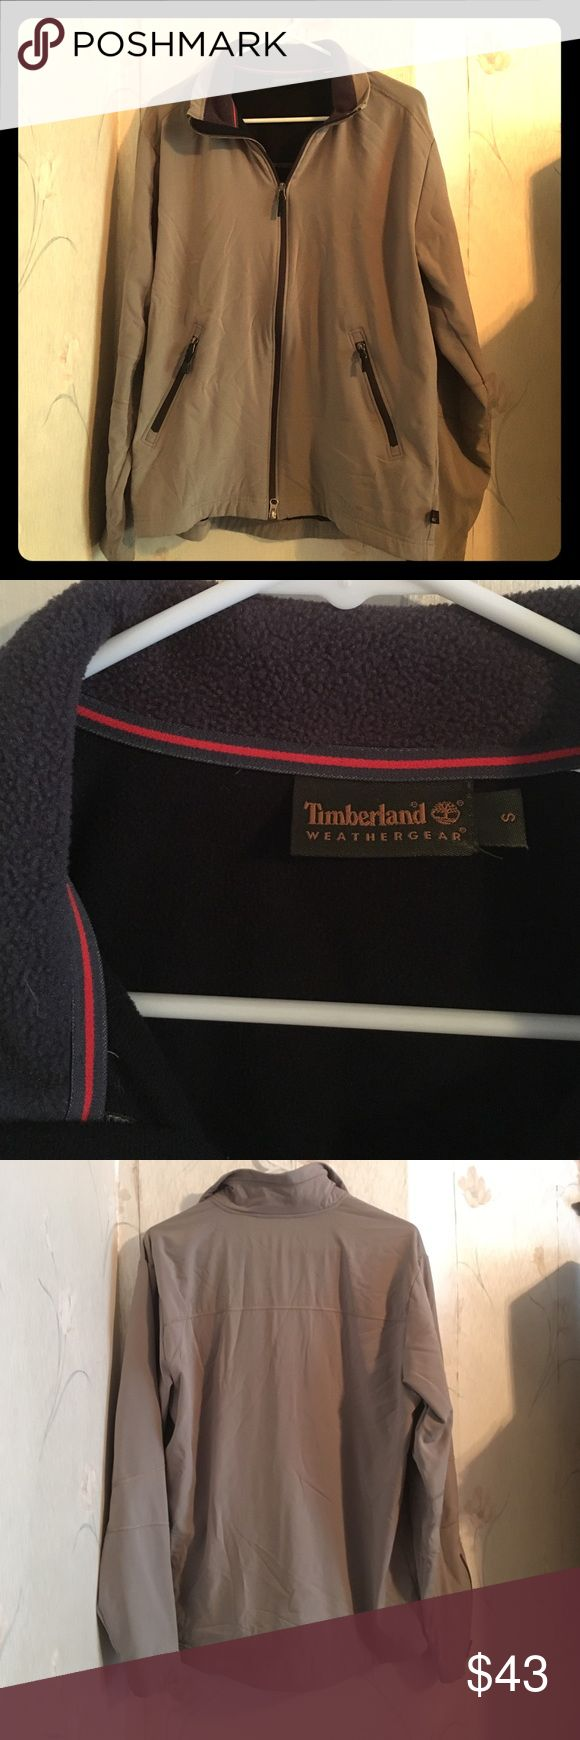 Timberland fleece lined jacket Men's Timberland fleece lined, zip up jacket, size small. Khaki colored weather proof outer layer with a black fleece lining. Excellent condition. Timberland Jackets & Coats